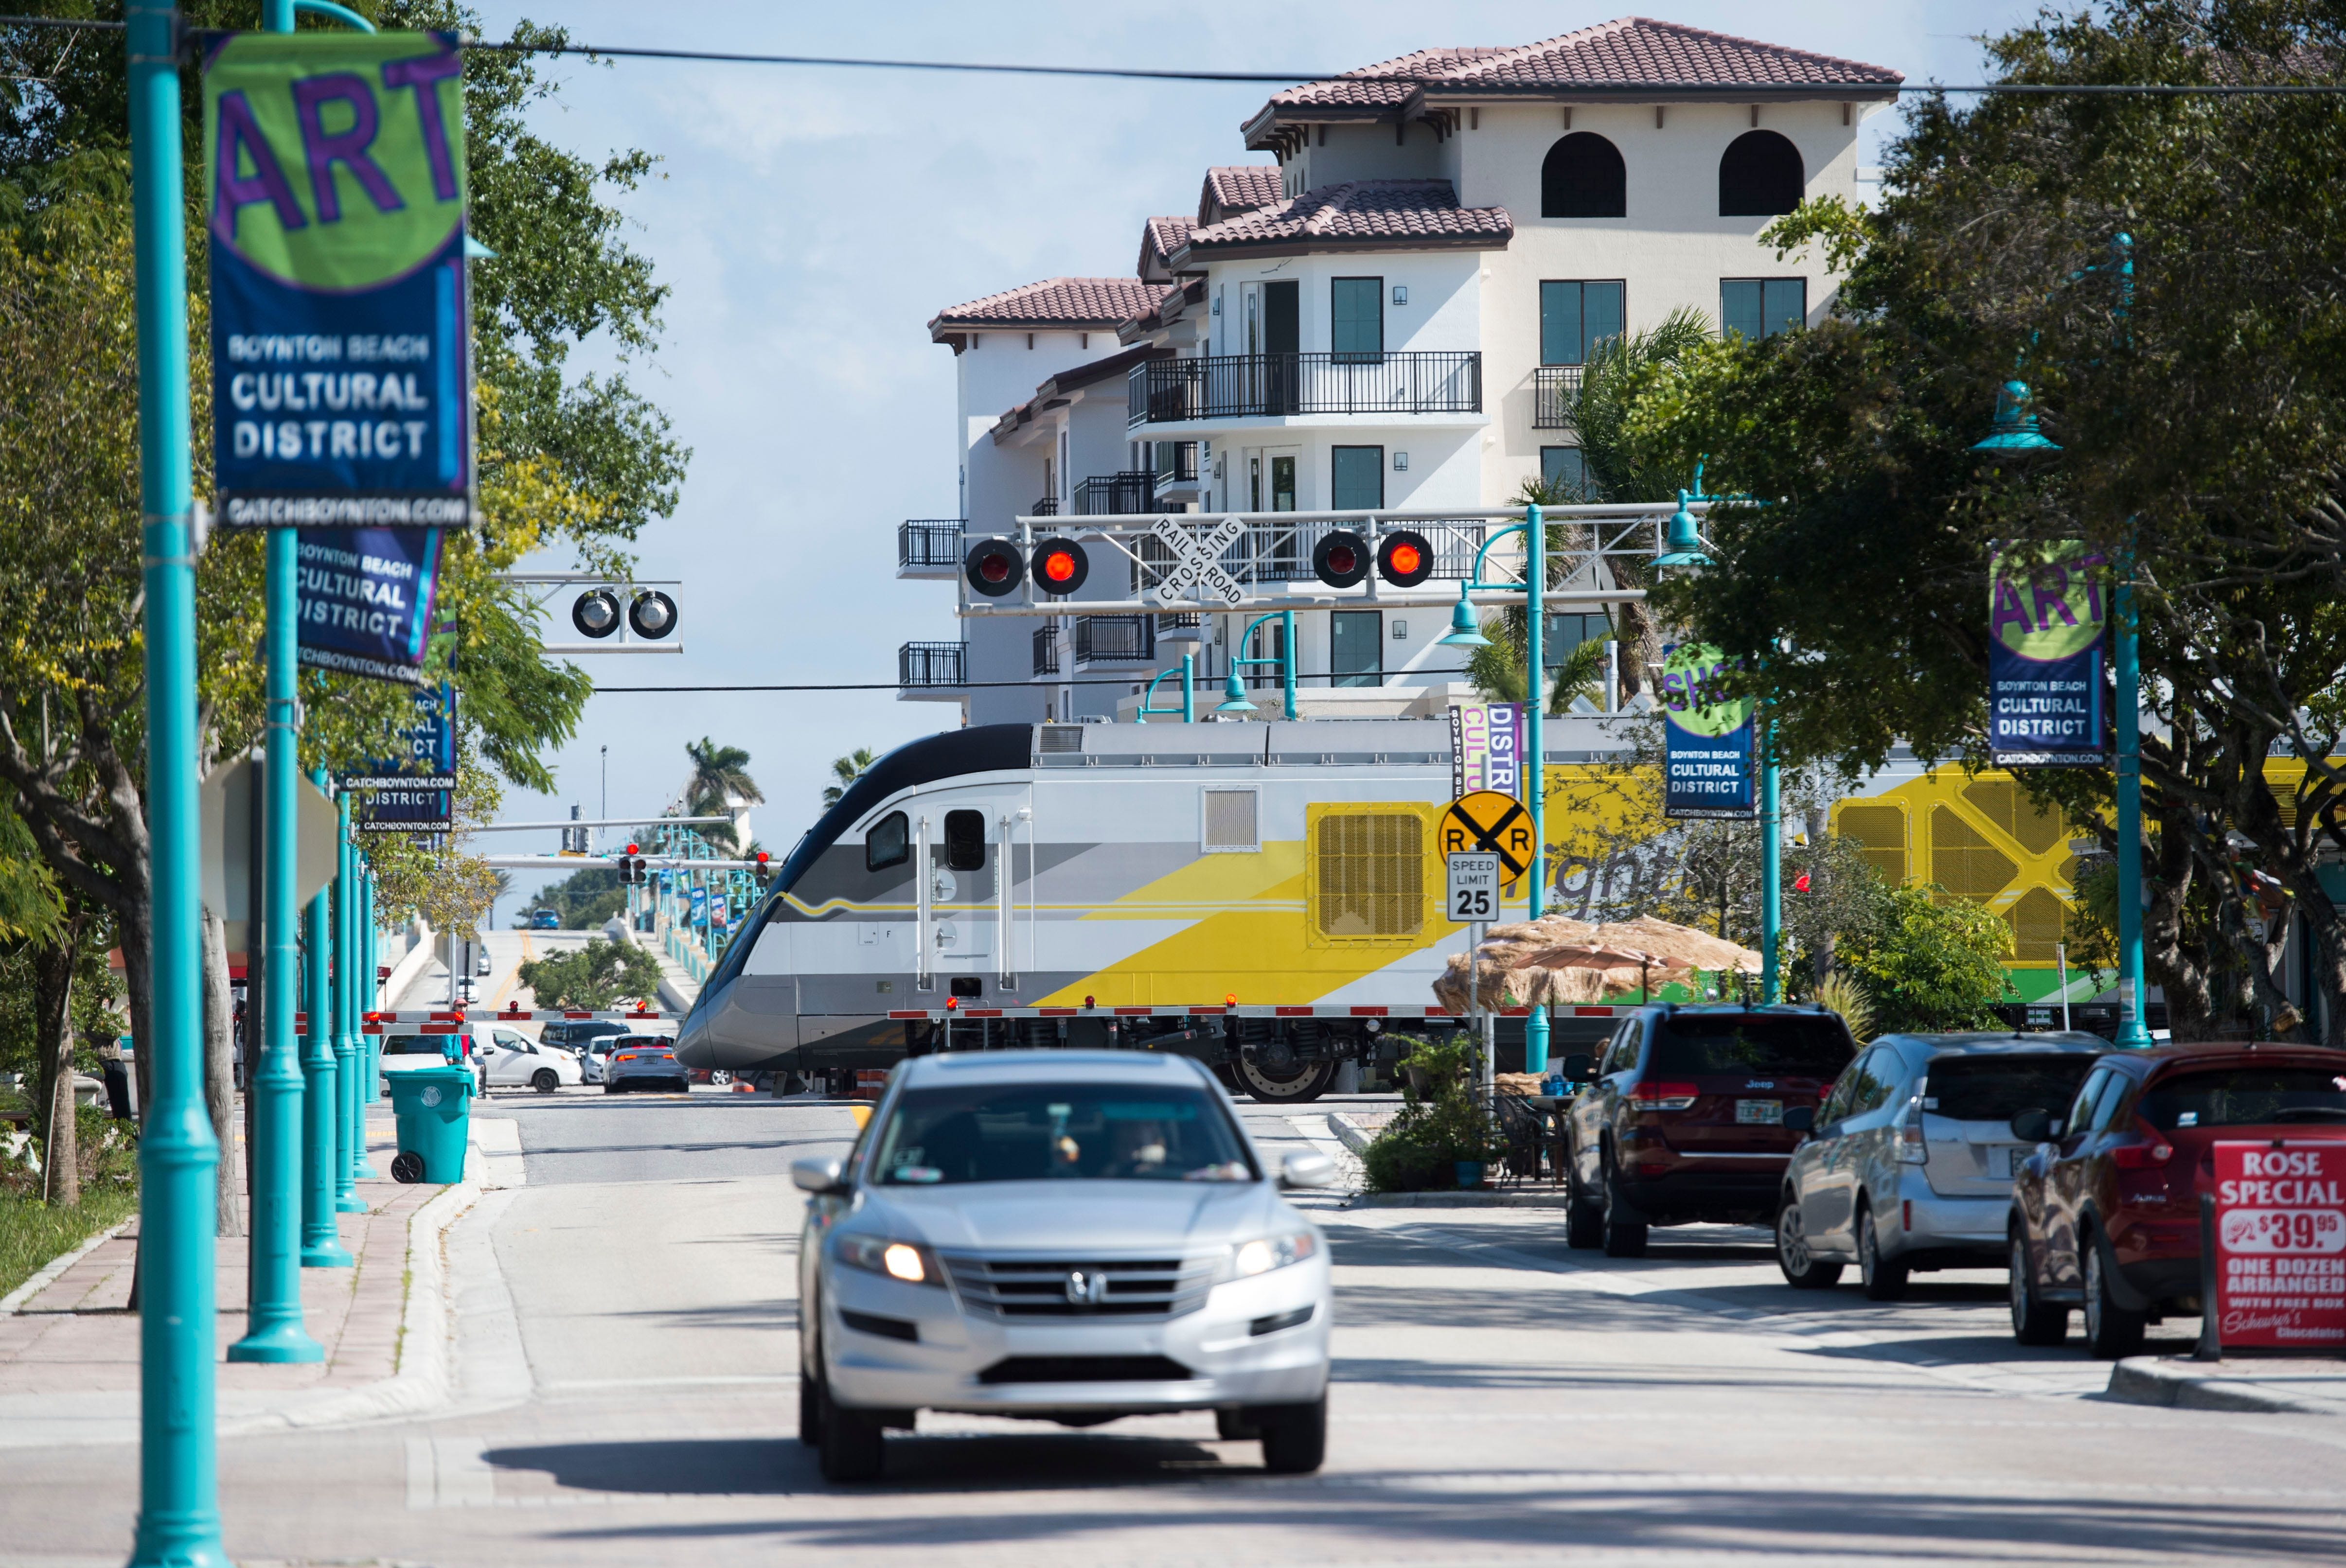 Brightline trains to expand to West Coast with California-Las Vegas service   USA Today